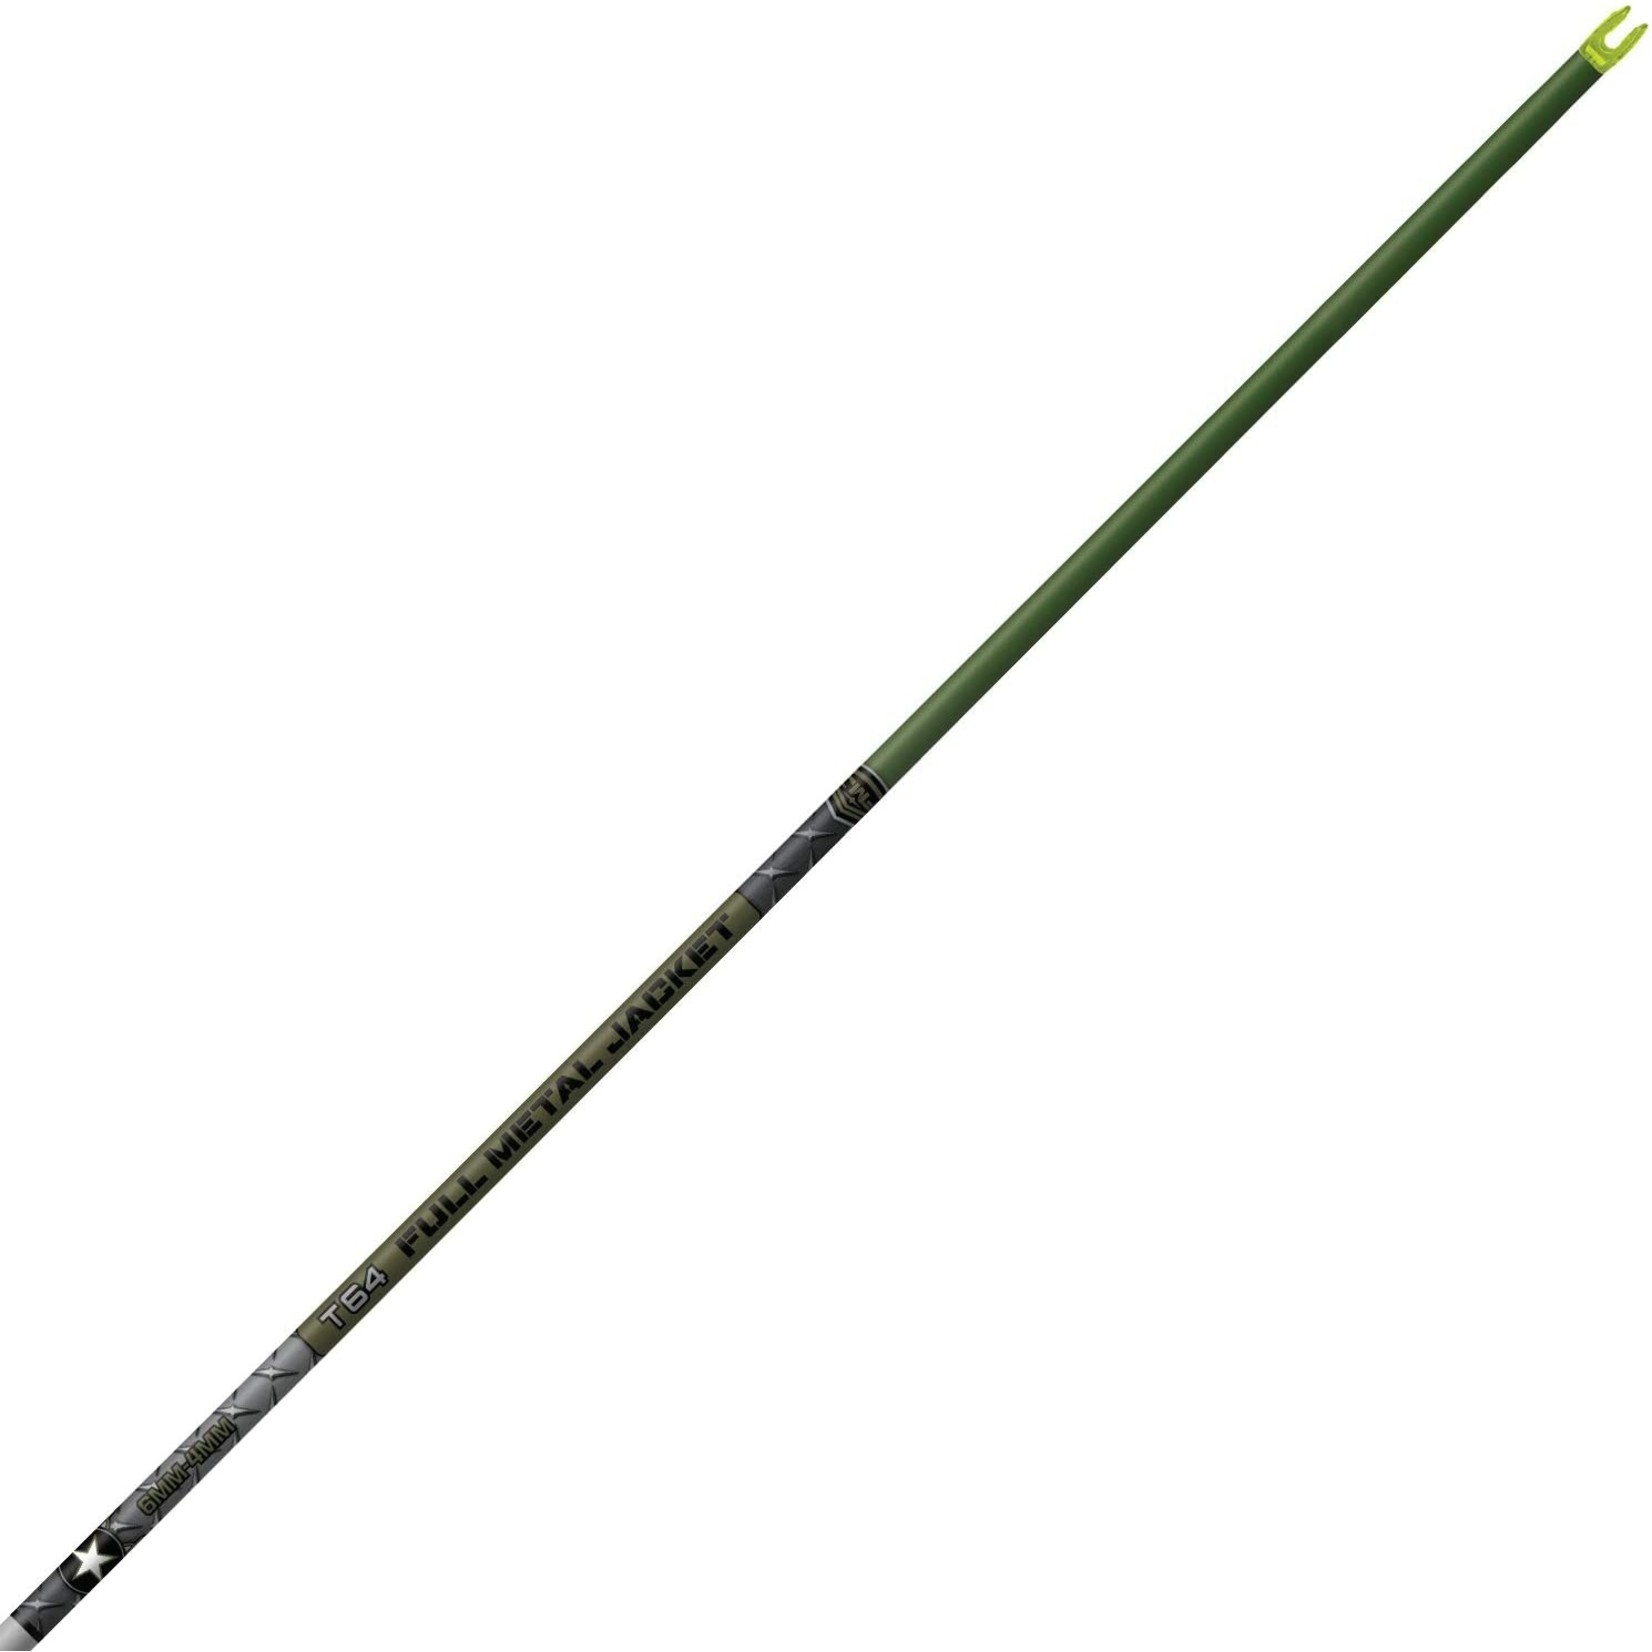 Easton 428728 FMJ T64 TAPERED 7.9DF SHAFTS